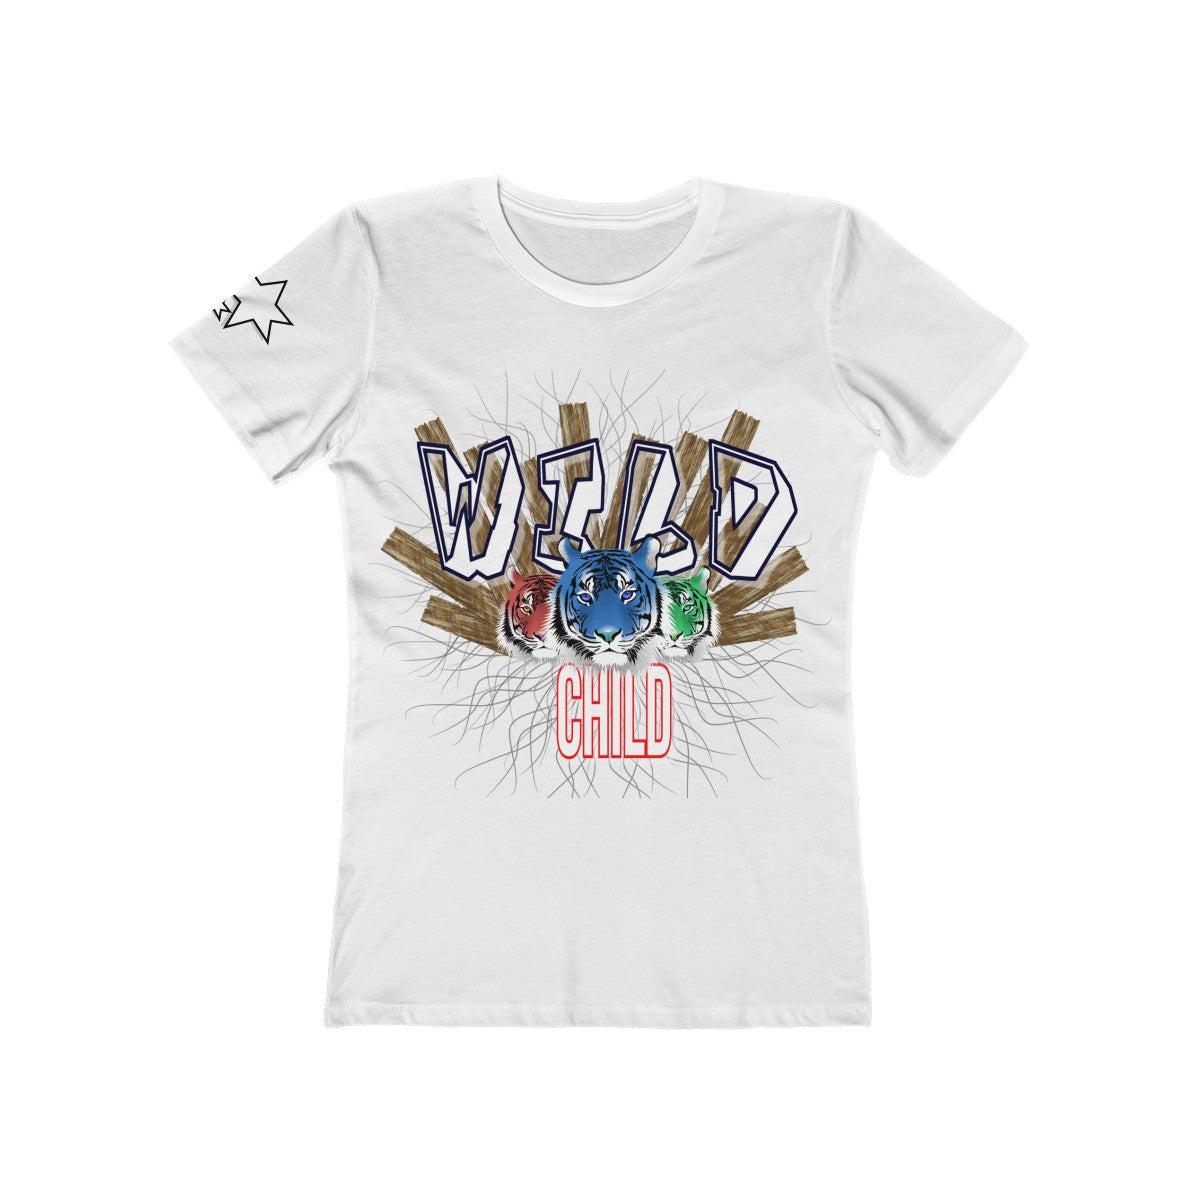 Women's The Boyfriend Tee - Wild Child